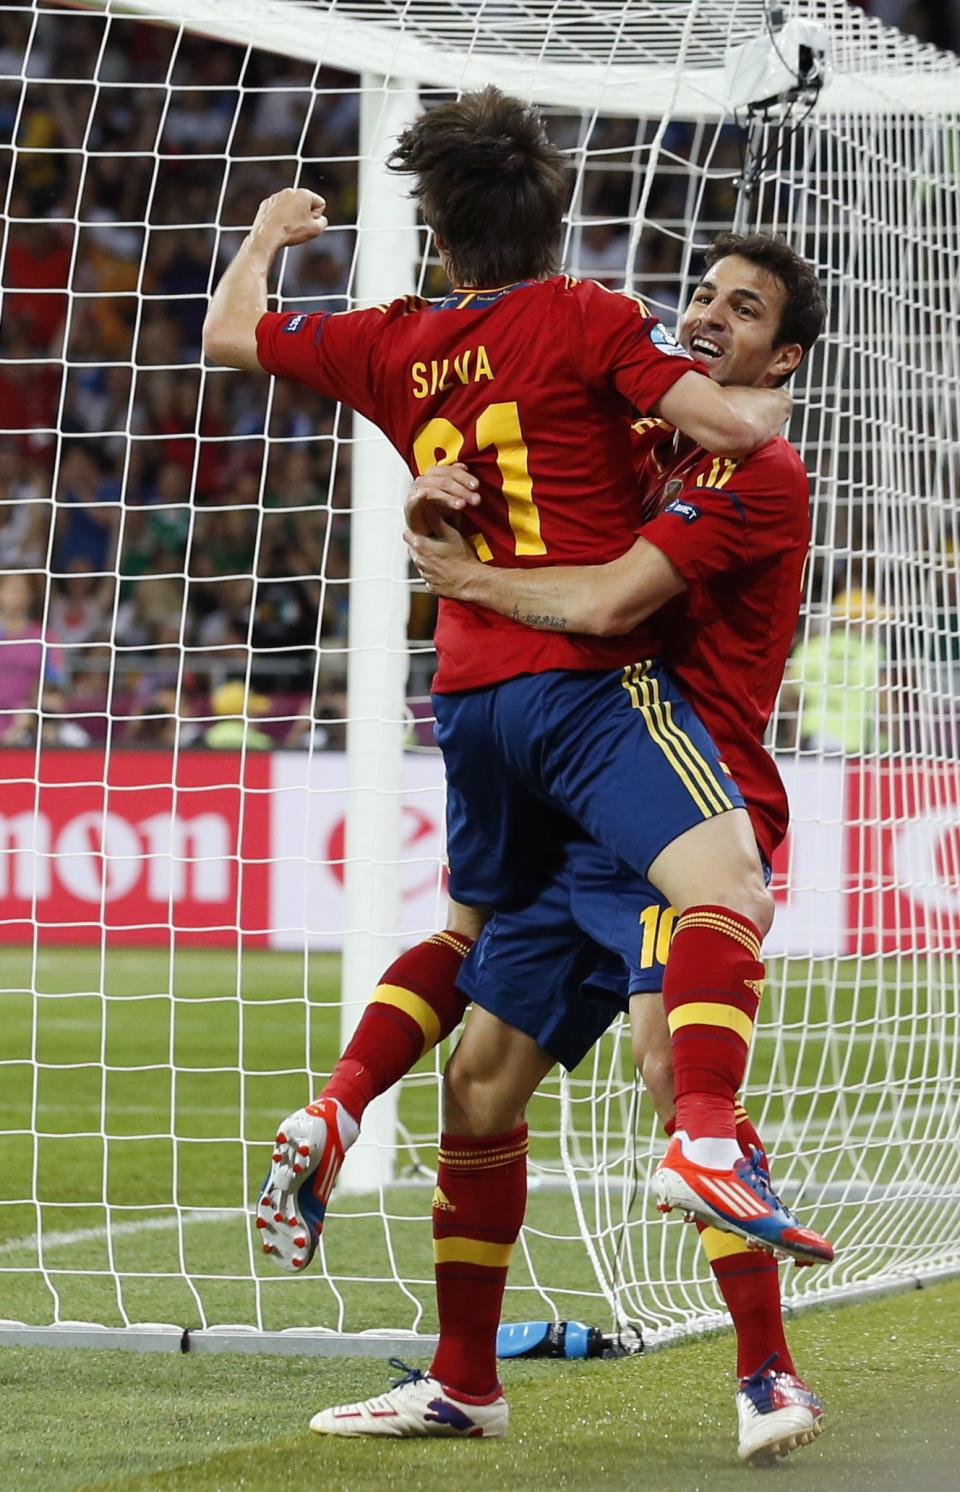 Spain's David Silva, left,  celebrates with teammate Cesc Fabregas after scoring during the Euro 2012 soccer championship final  between Spain and Italy in Kiev, Ukraine, Sunday, July 1, 2012. (AP Photo/Jon Super)